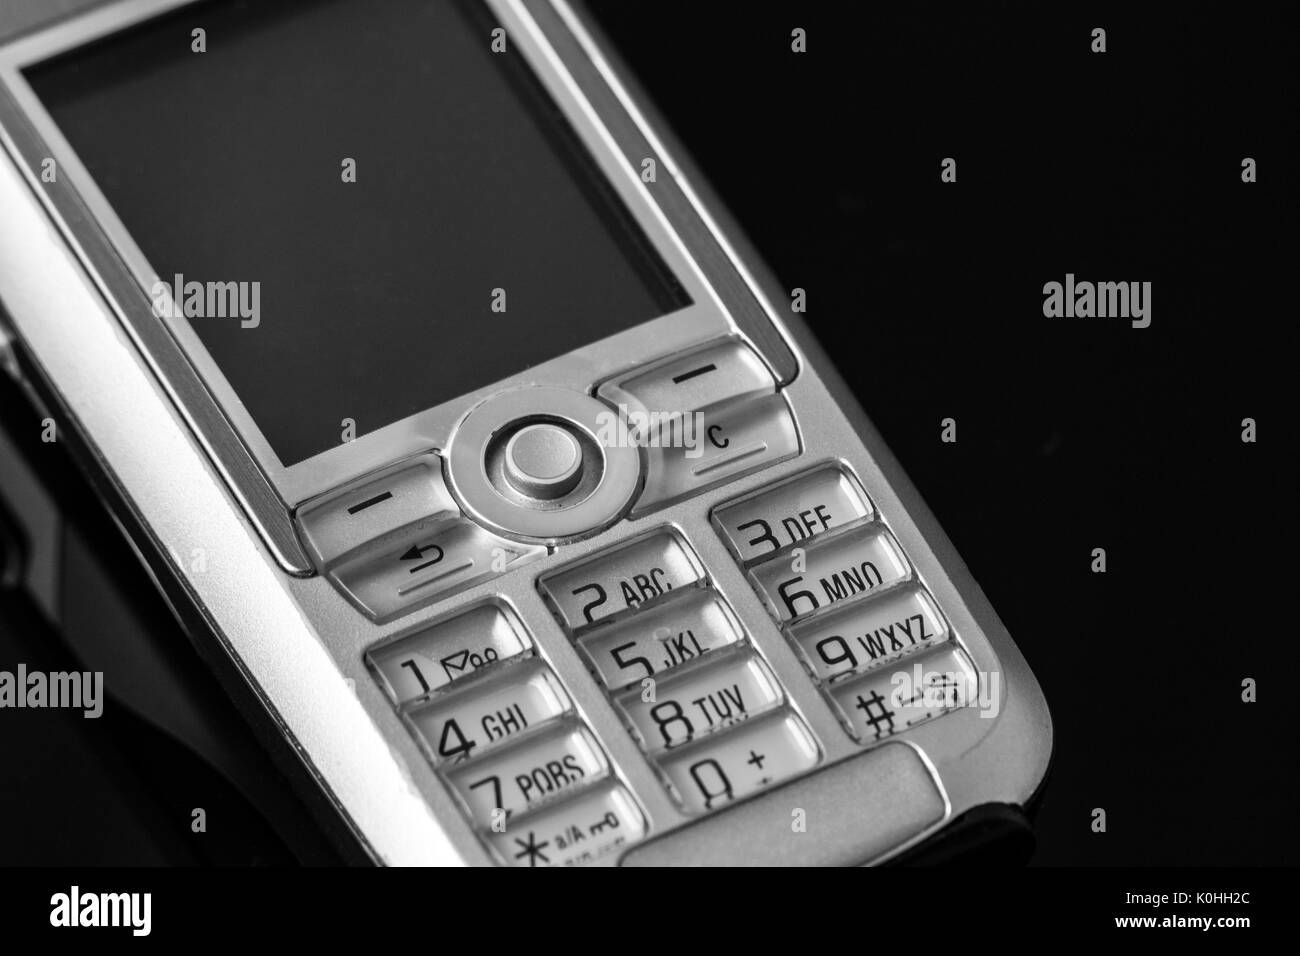 old numeric cell phone - Stock Image